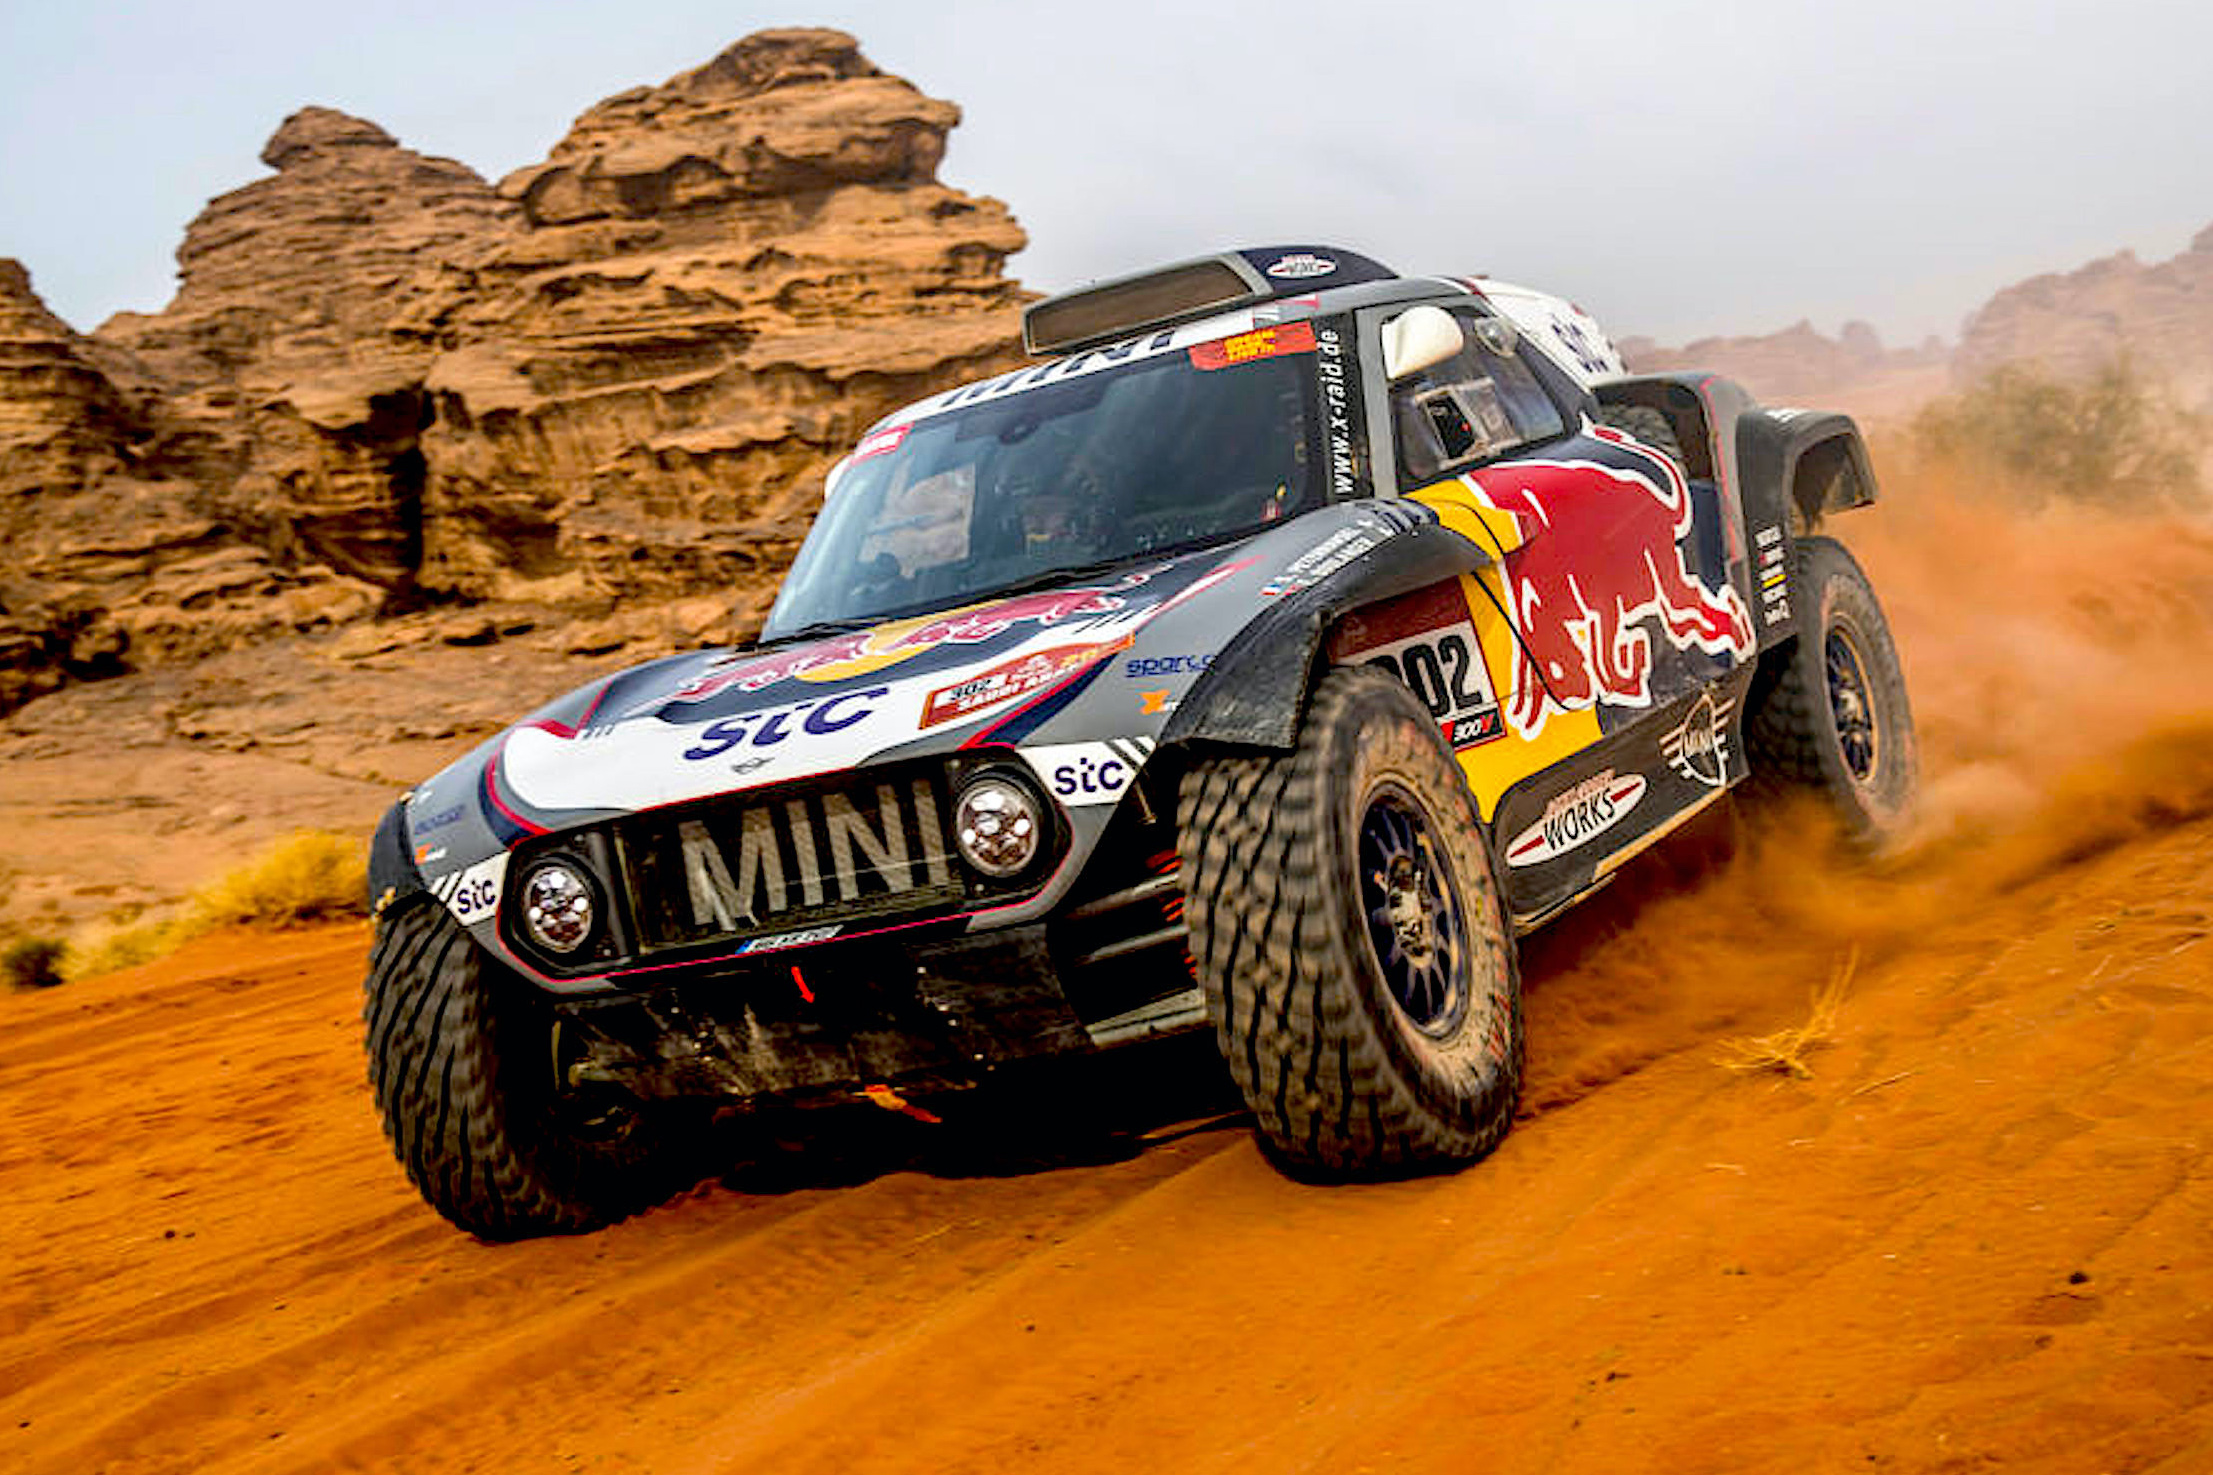 DAKAR FINAL DAY LIVE TICKER HERE: